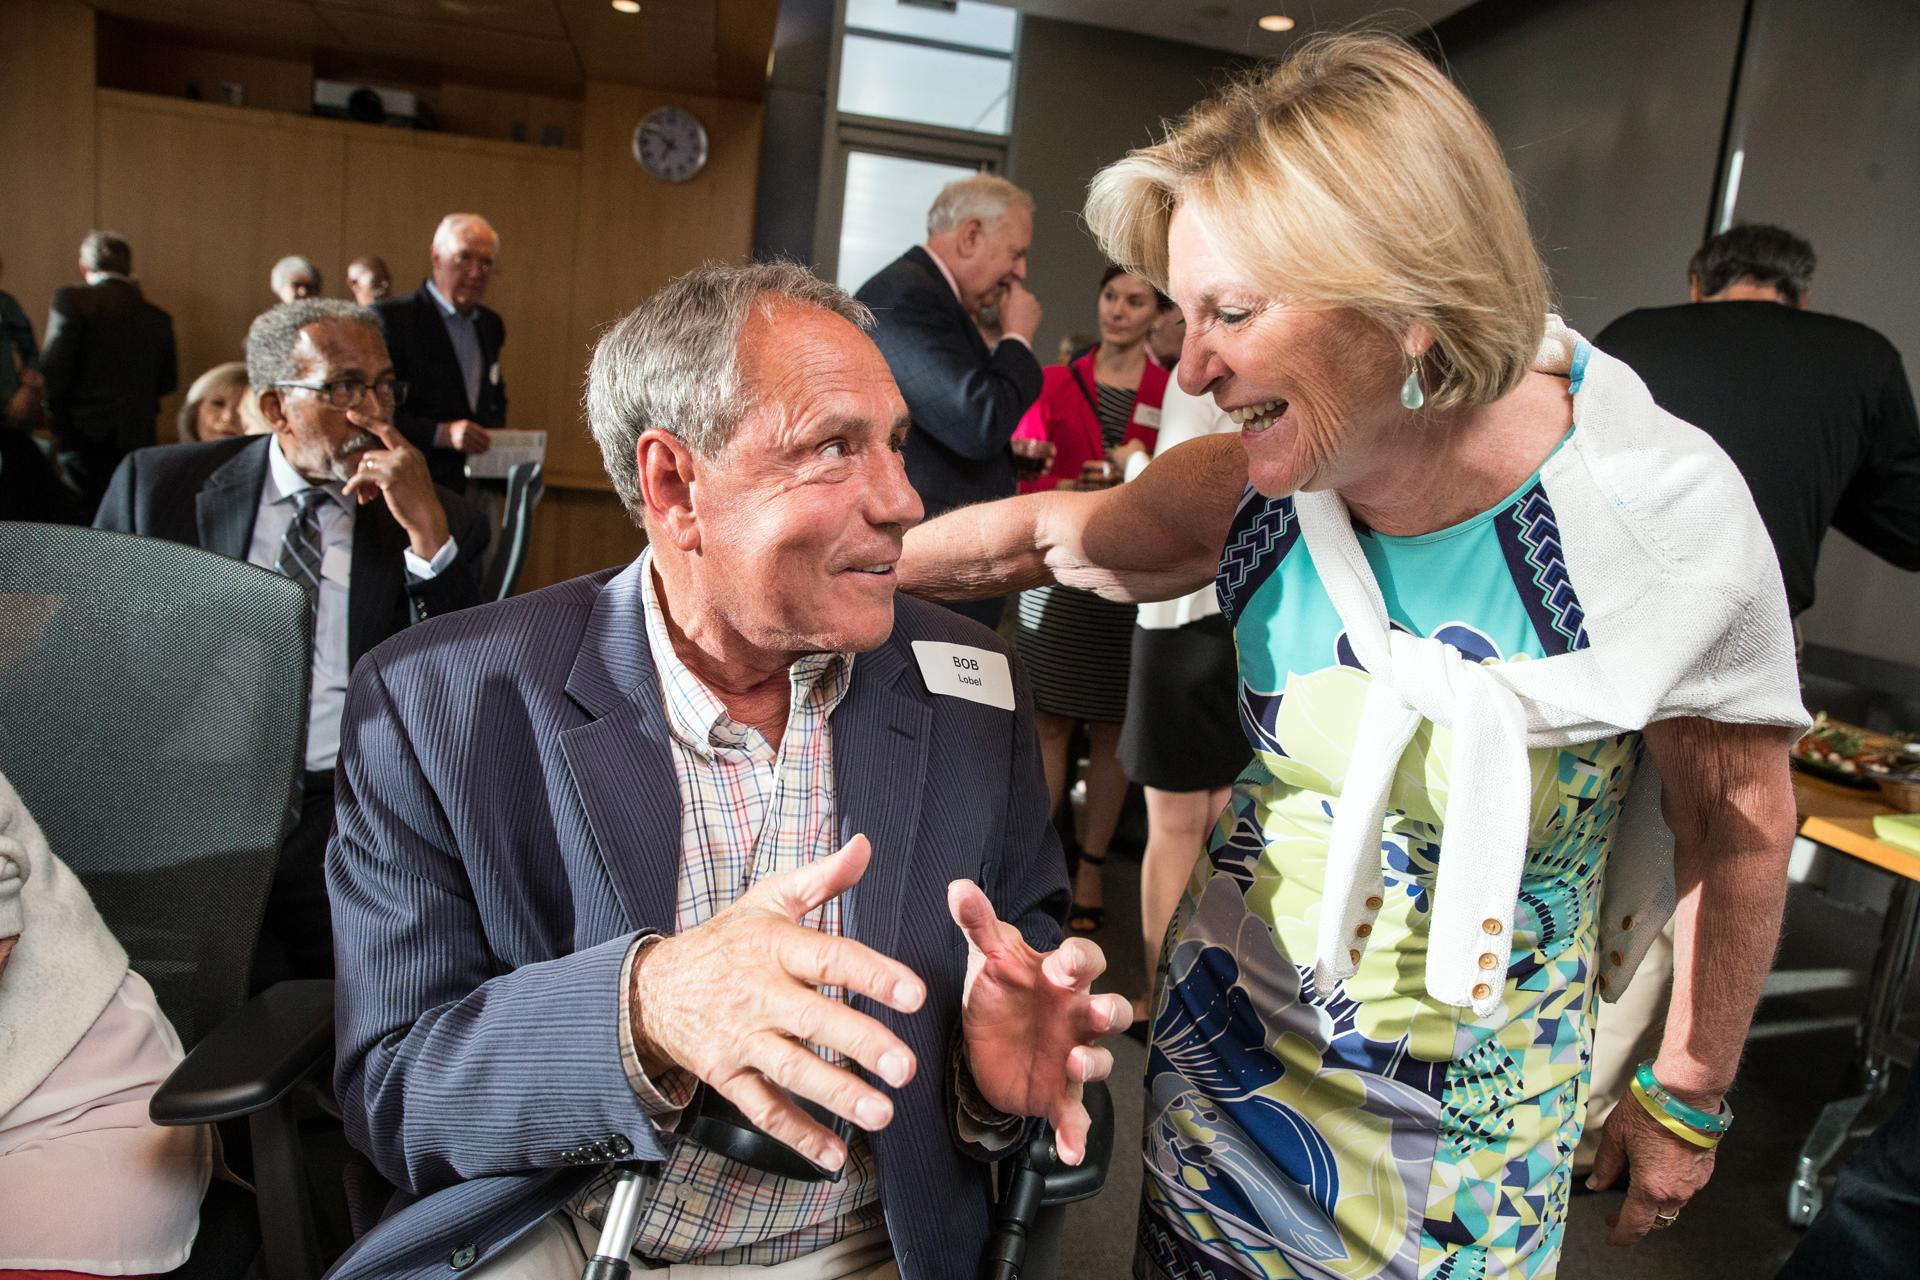 06/14/2017 BOSTON, MA Bob Lobel (cq) (left) and Emily Rooney (cq) attend a cocktail party at WGBH studios. (Aram Boghosian for The Boston Globe)